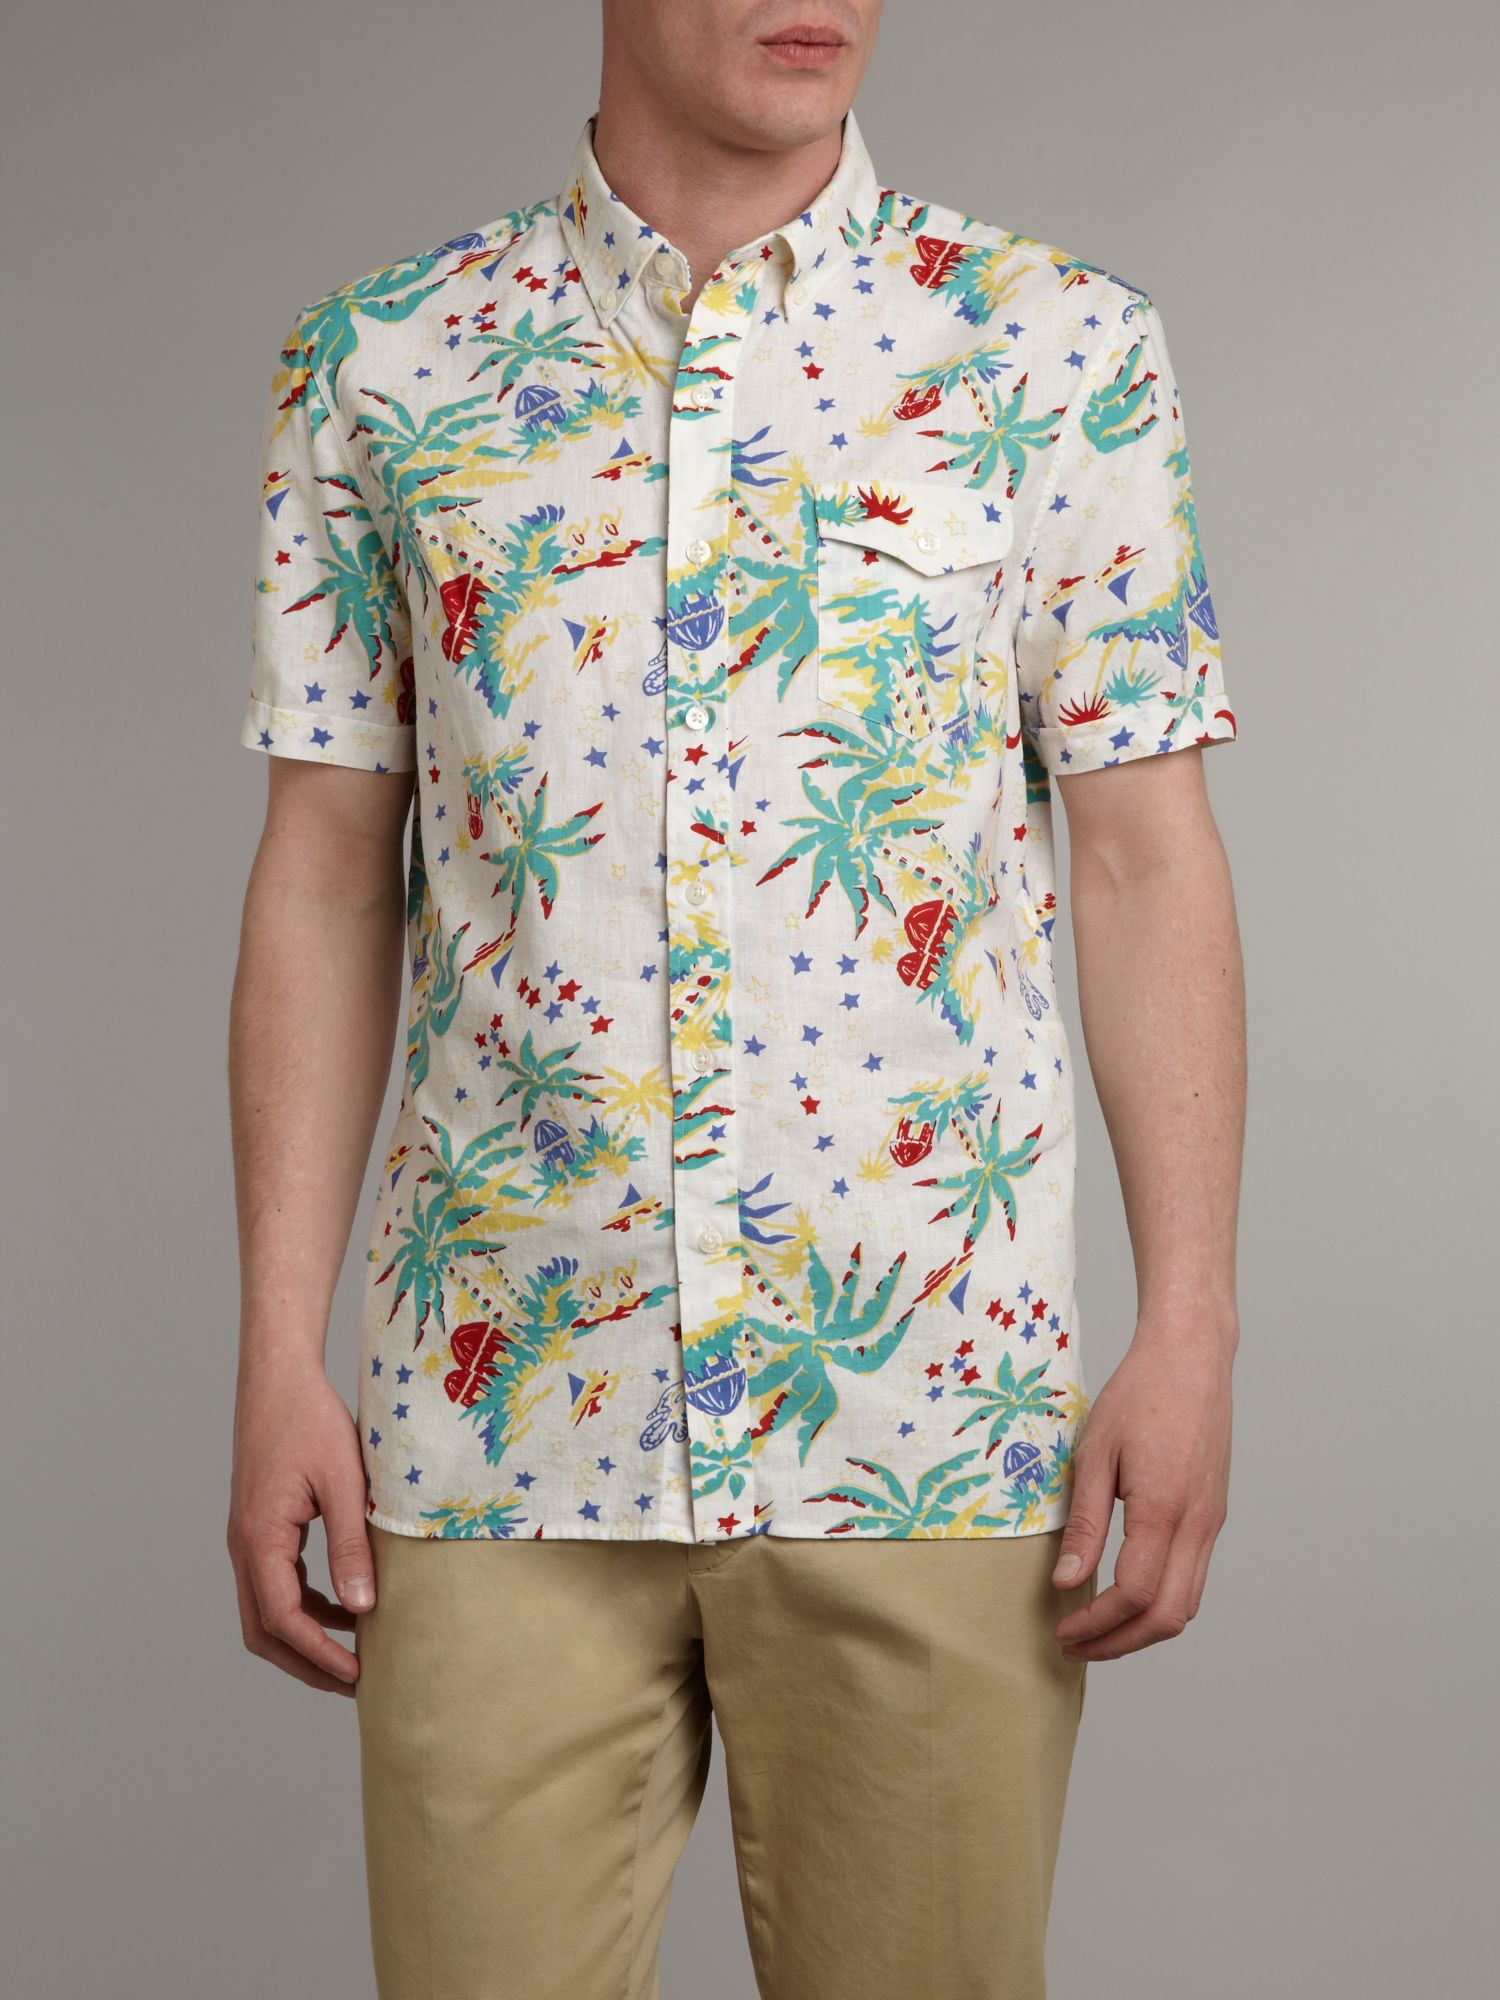 Hawaiian print shirt